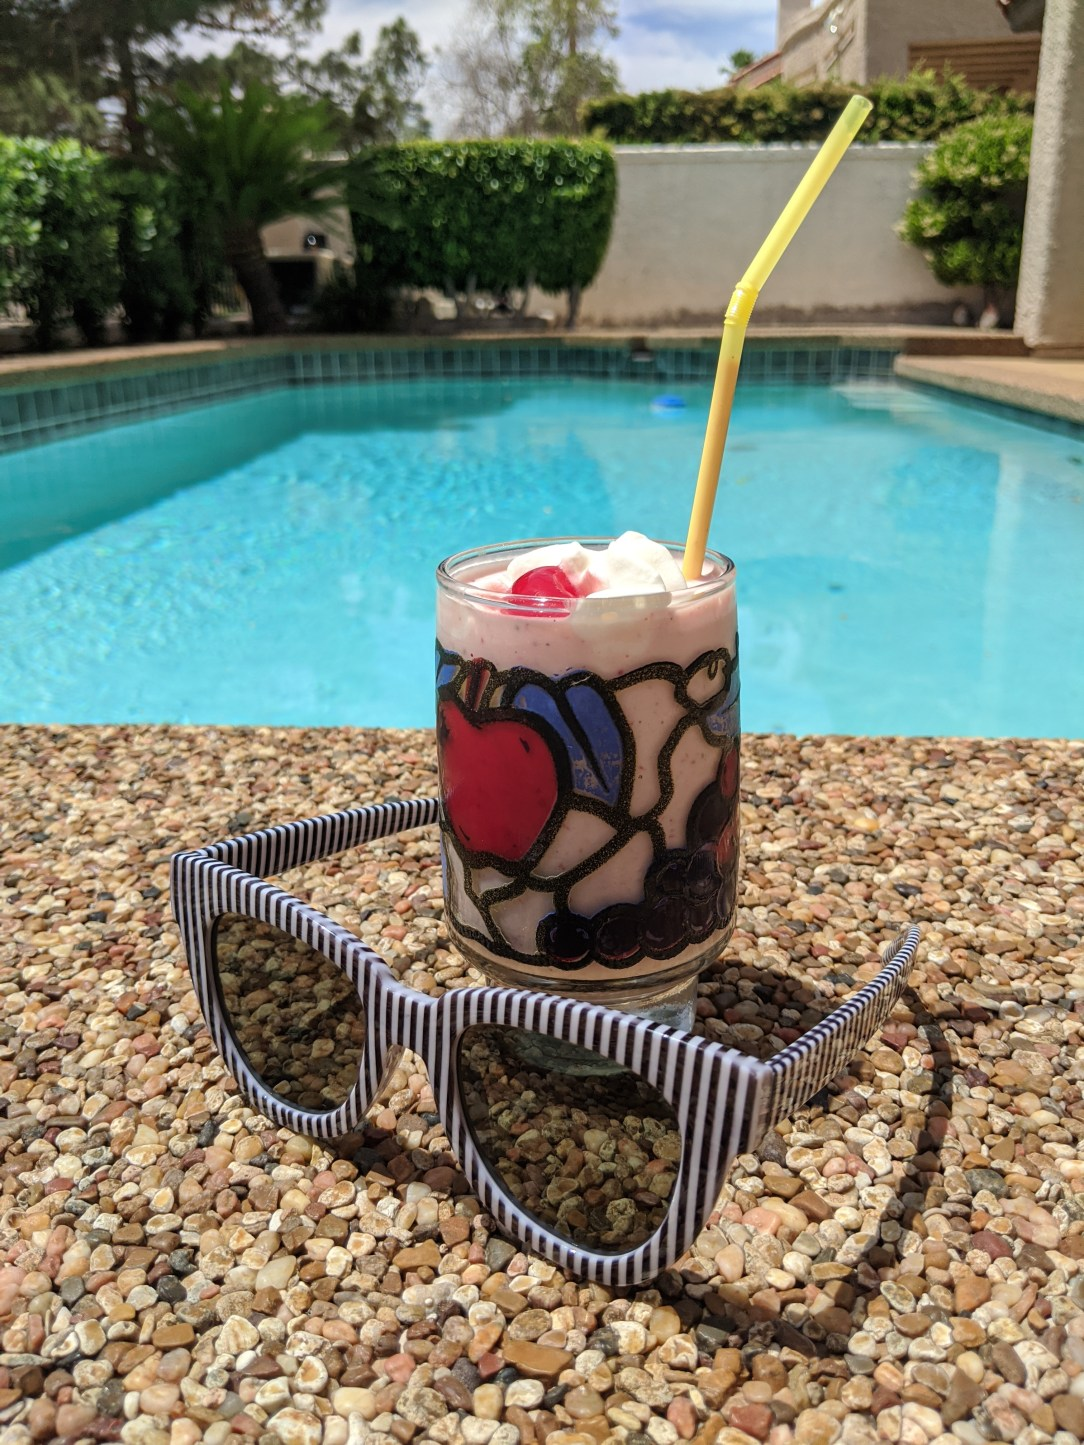 smoothie-poolside-striped-sunglasses-pool-day